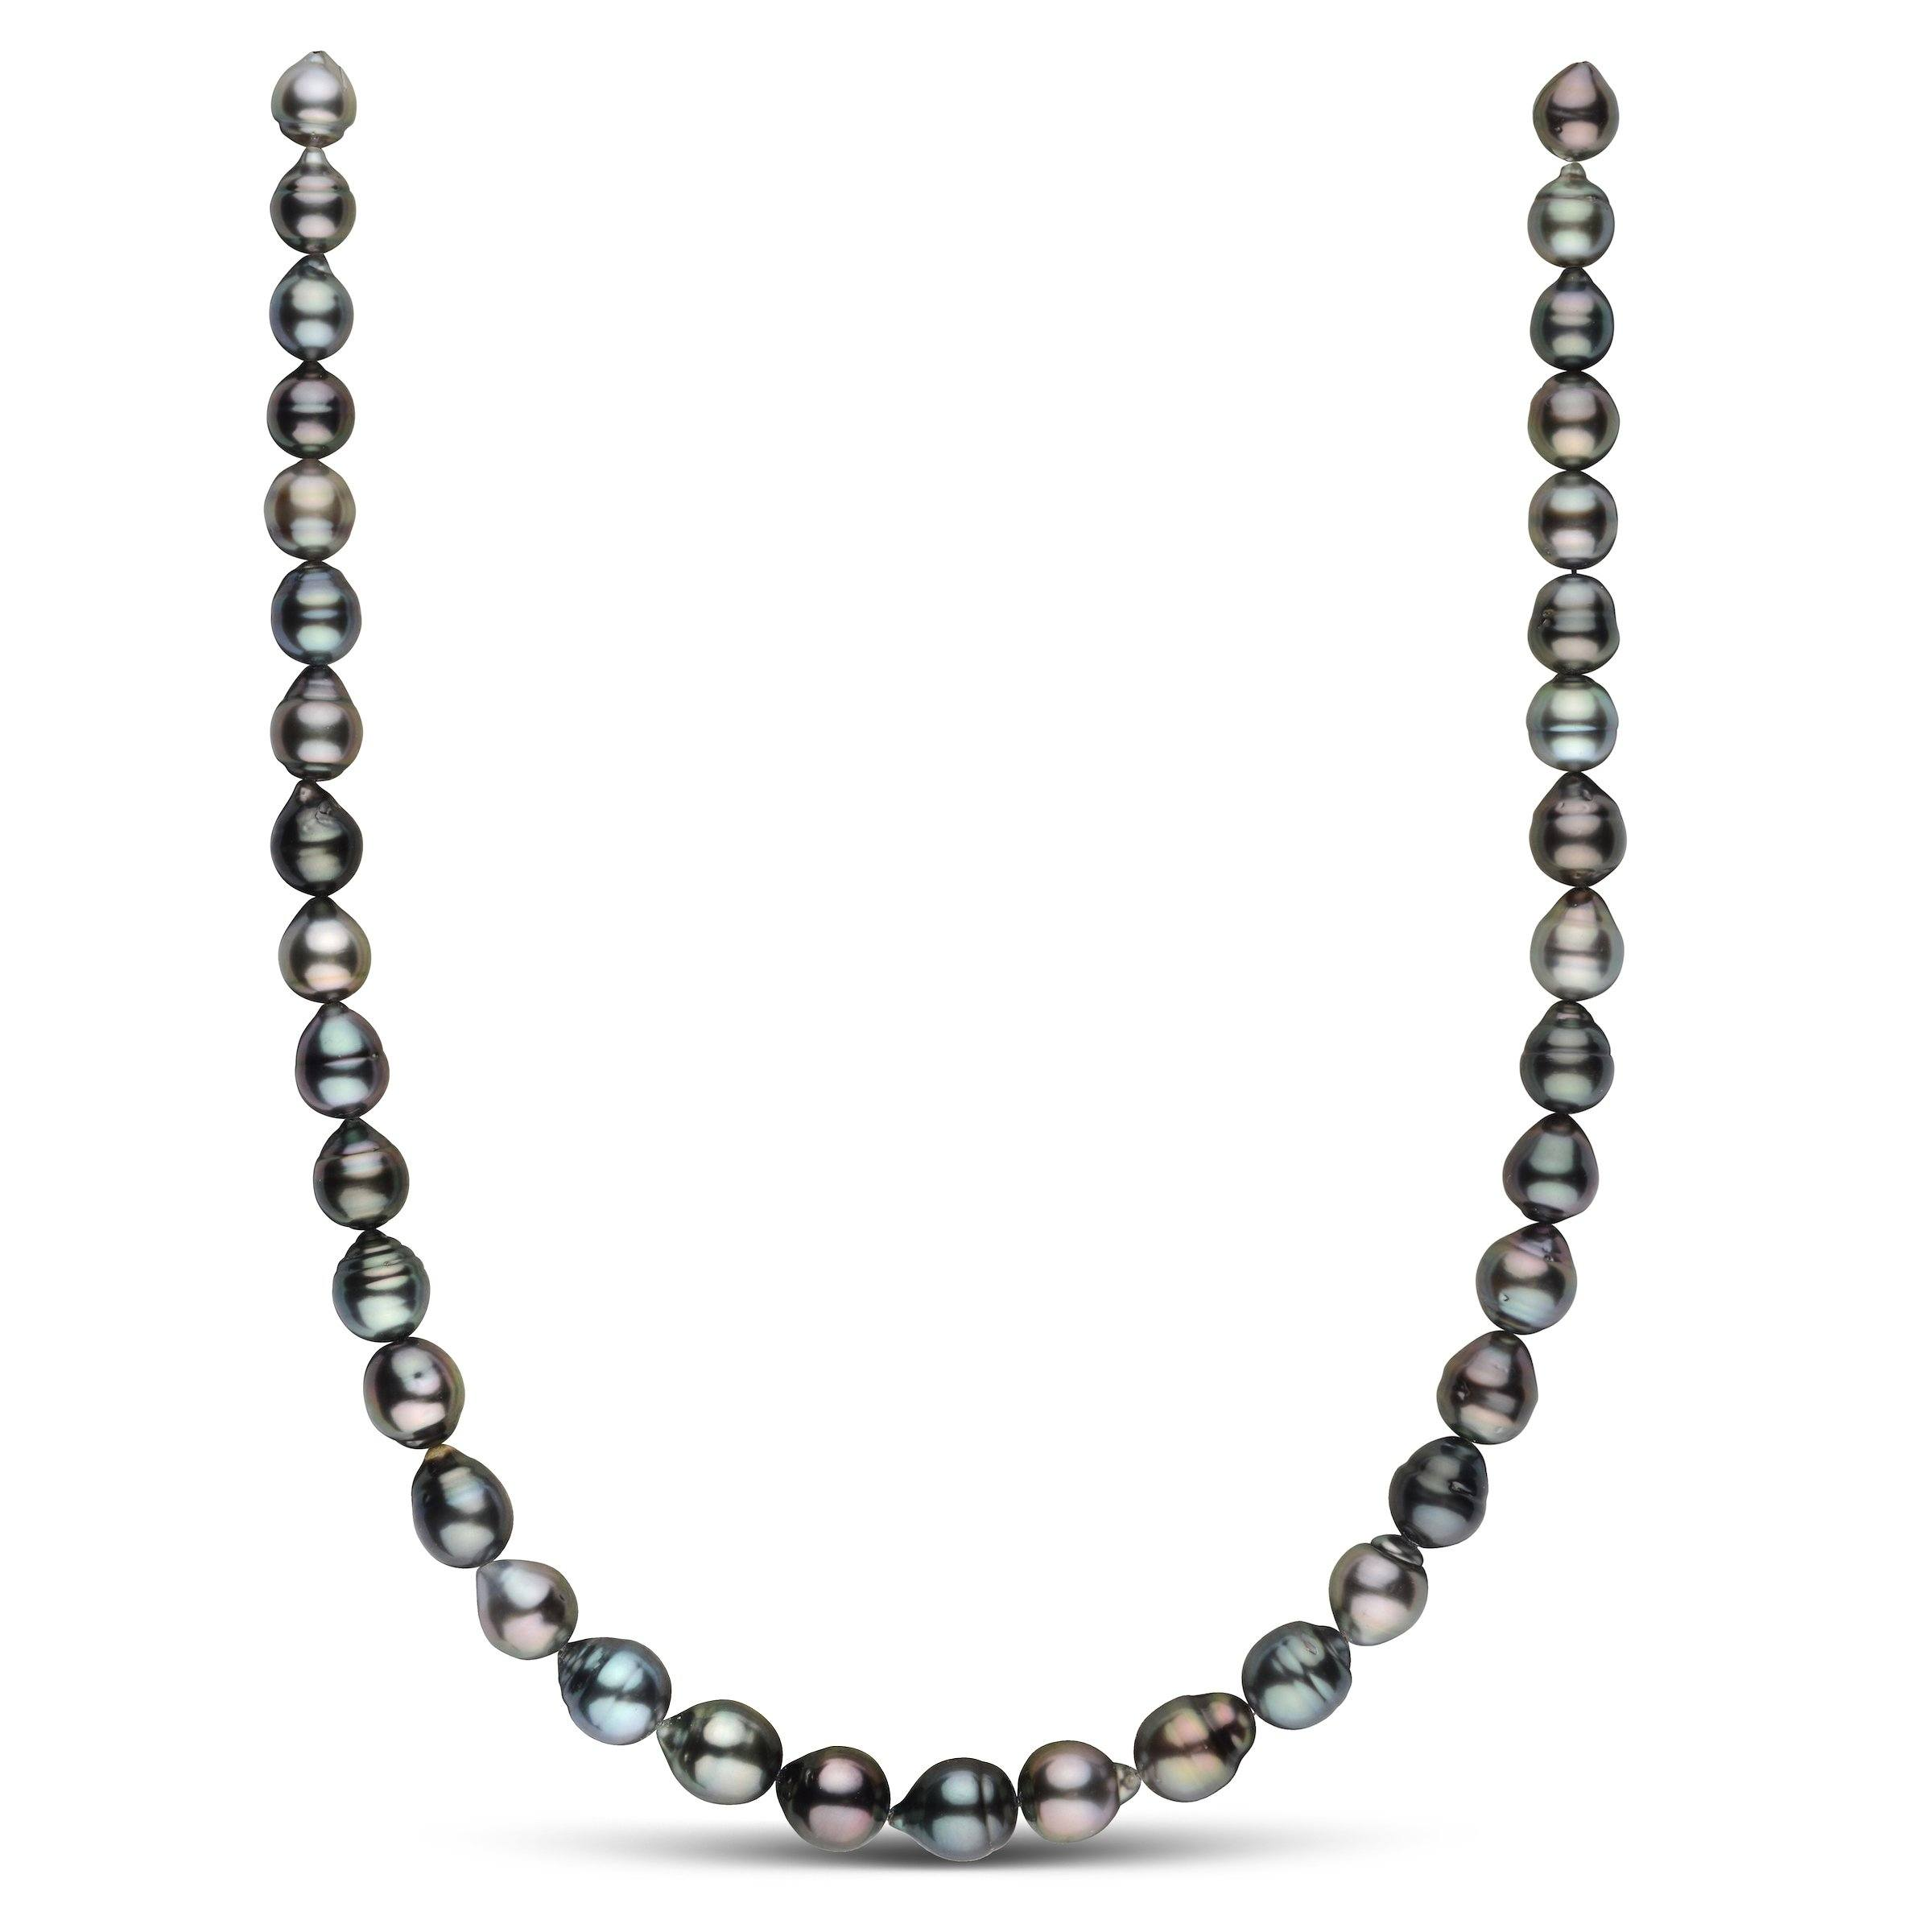 8.2-10.3 mm AA+/AAA Tahitian Baroque Pearl Necklace